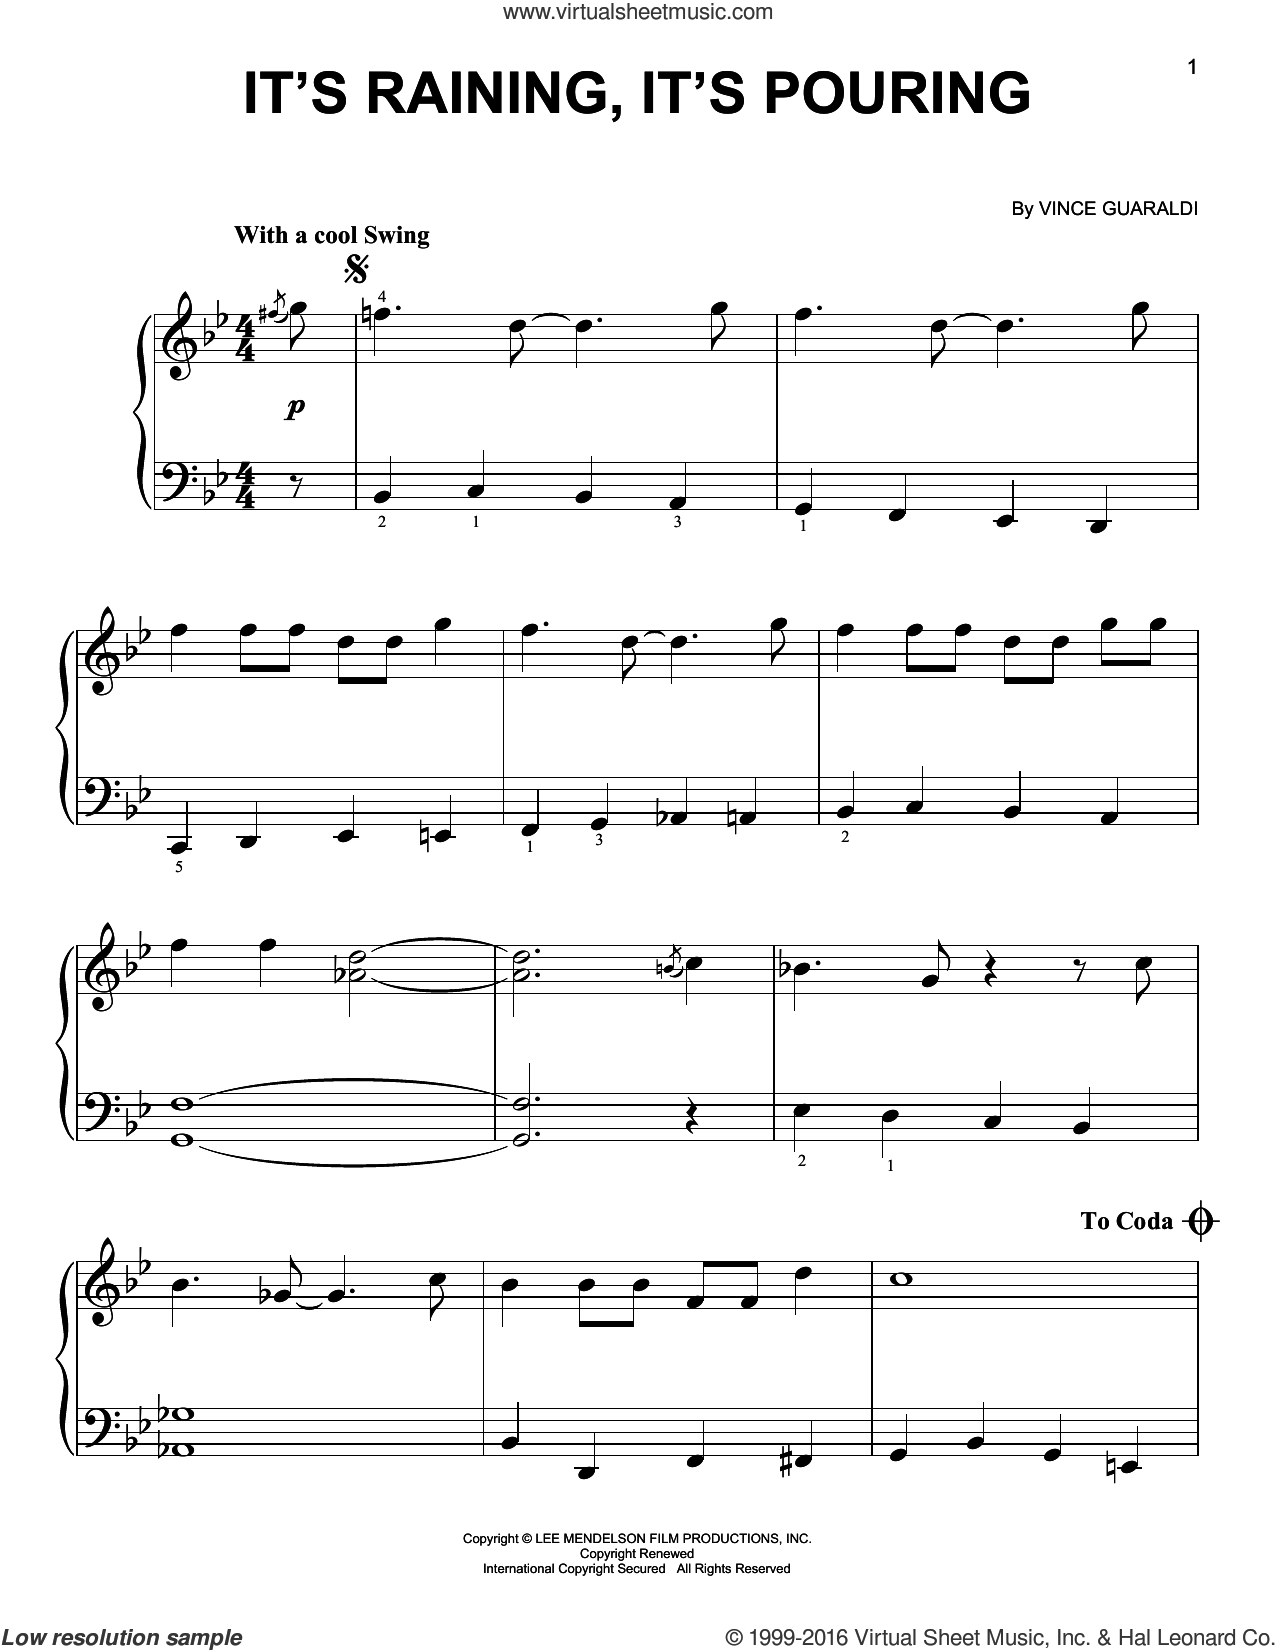 It's Raining, It's Pouring sheet music for piano solo by Vince Guaraldi. Score Image Preview.